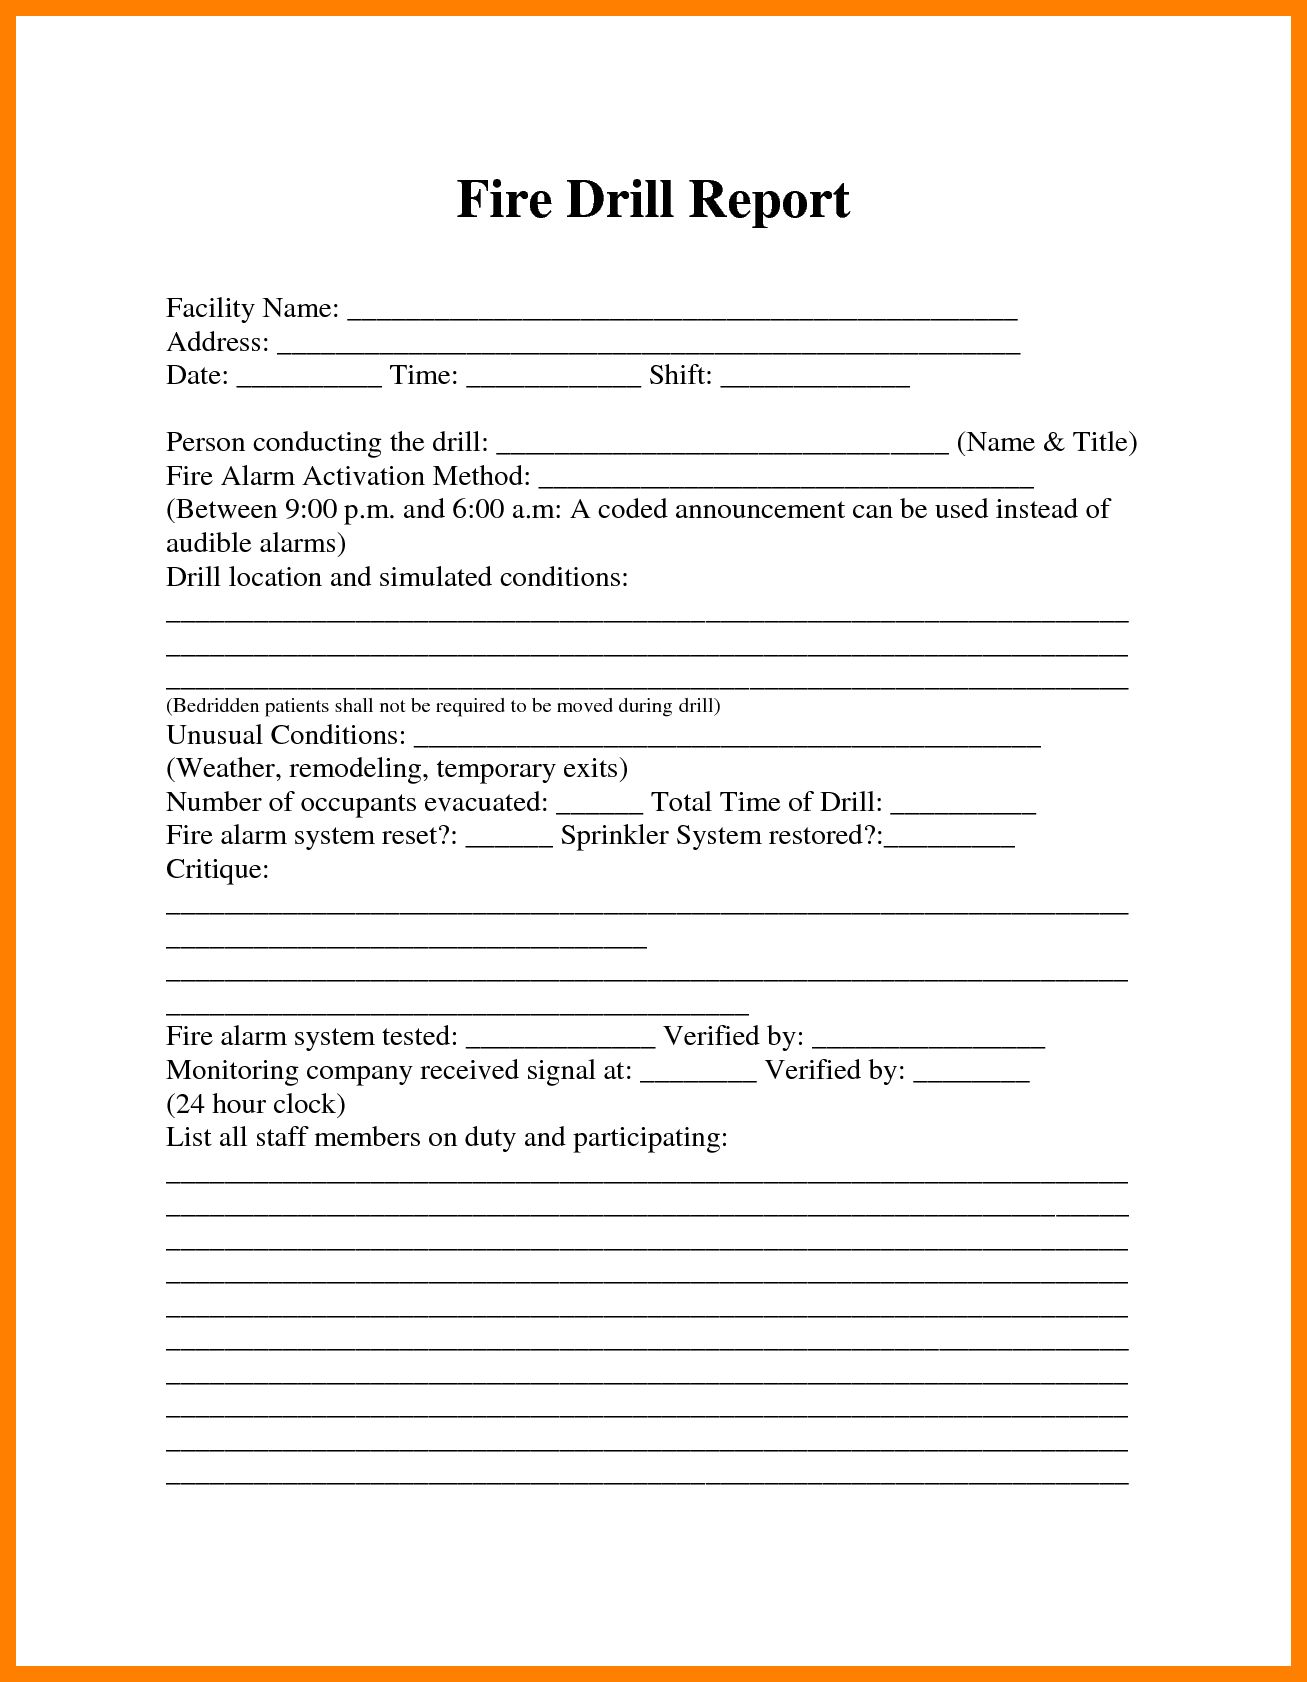 The Extraordinary Fire Drill Report Template Uk 12 Things That Happen When Inside Fire Evacuation Drill Report Template Fire Drill Procedures Fire Drill Drill